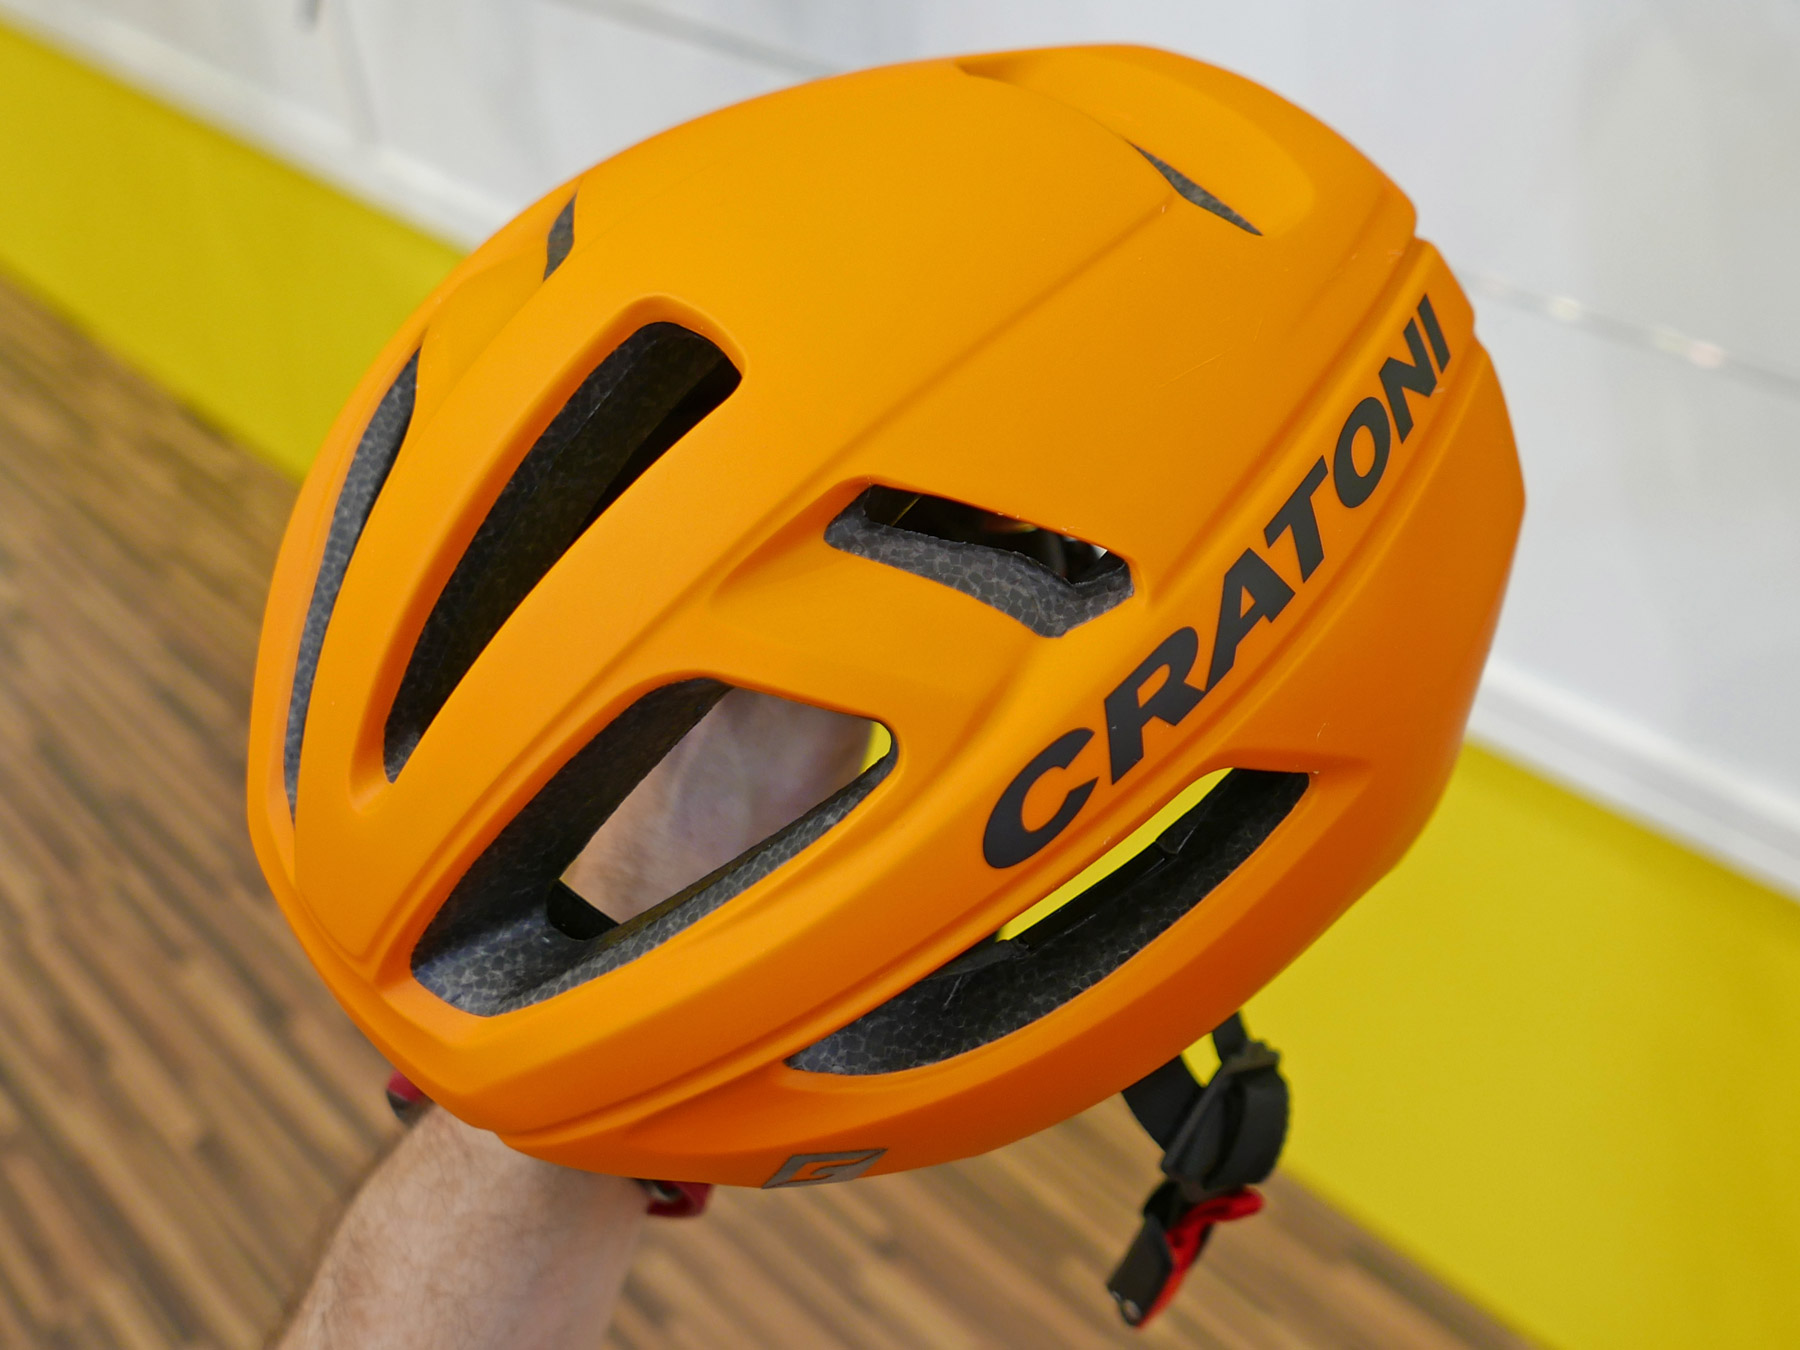 eb16 cratoni debuts aero c pro helmet smart c 94 concept maxster details bikerumor. Black Bedroom Furniture Sets. Home Design Ideas